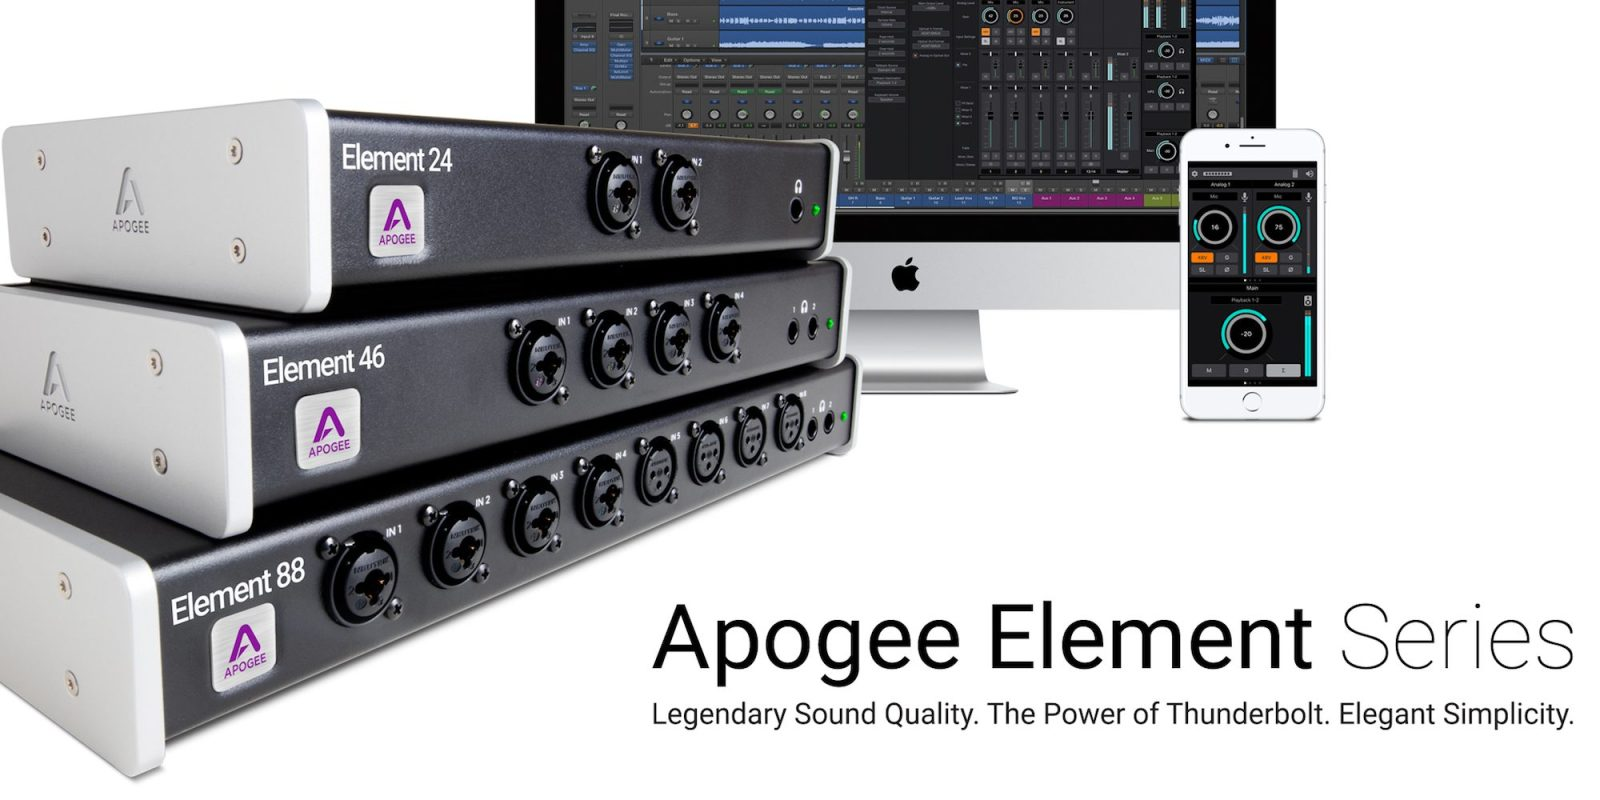 Apogee introduces new Element Series Thunderbolt audio interfaces for Mac